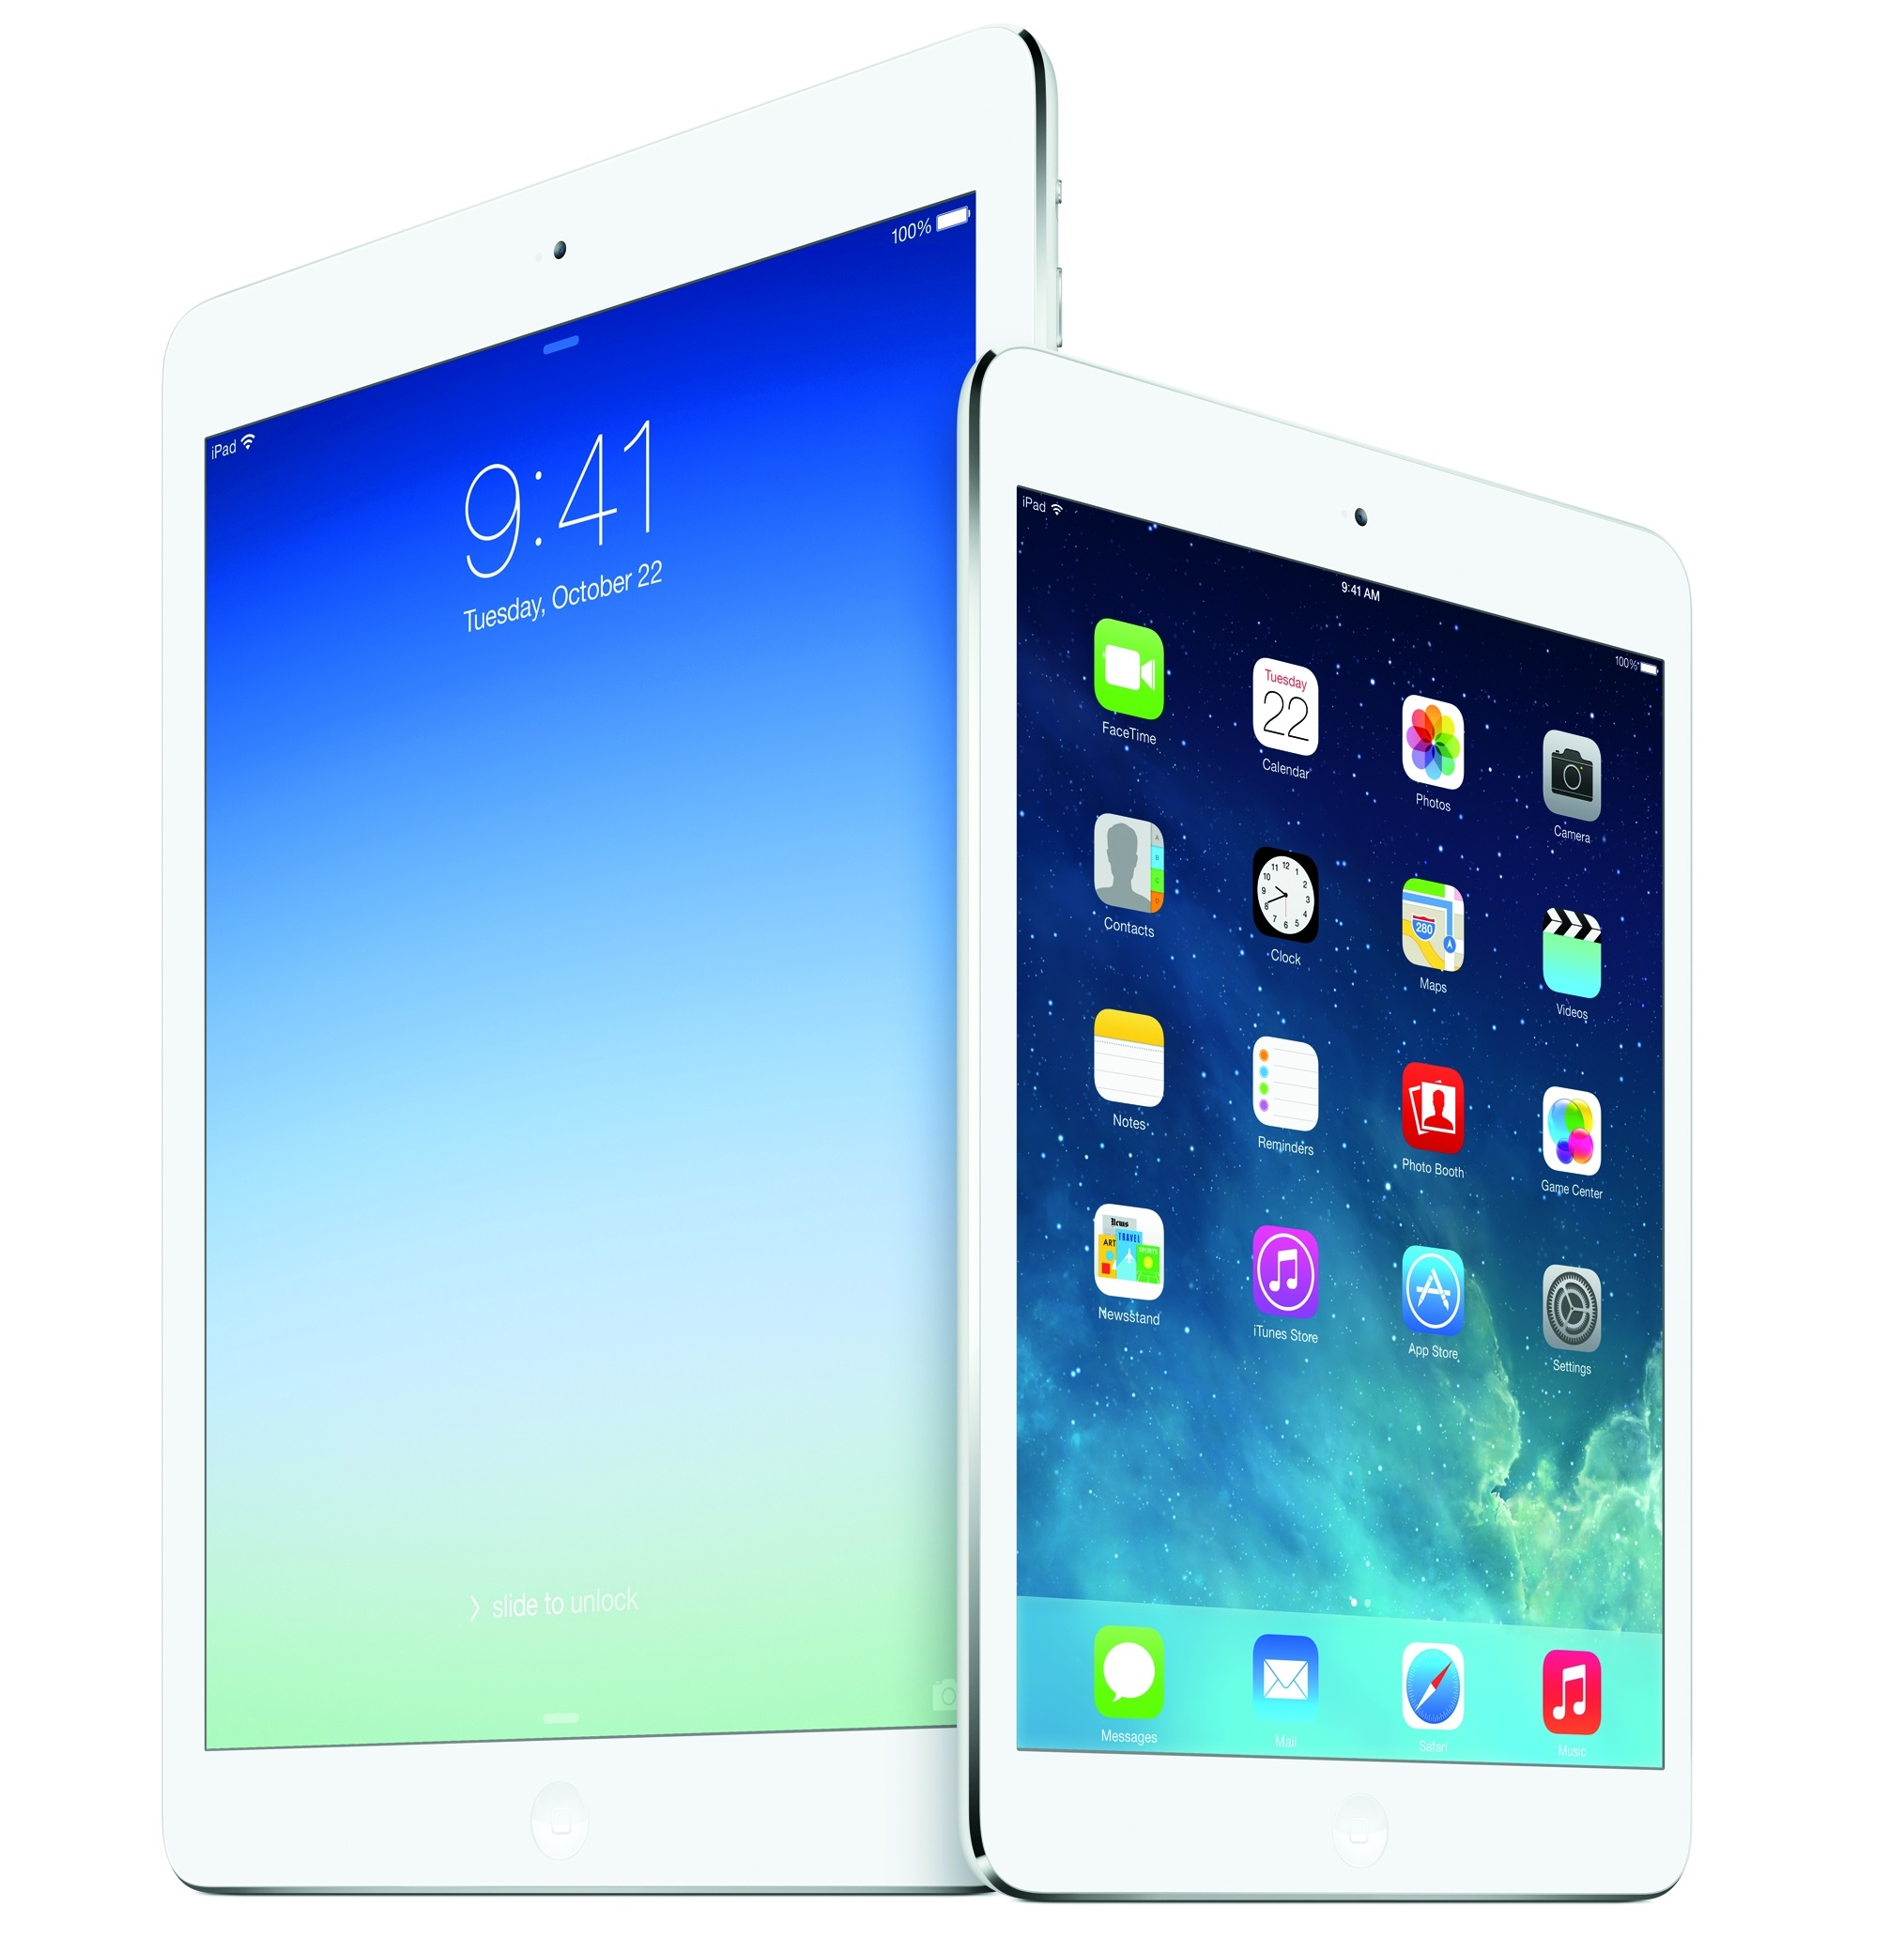 ipad air ipad mini 2 taking orders november 1 and 12. Black Bedroom Furniture Sets. Home Design Ideas